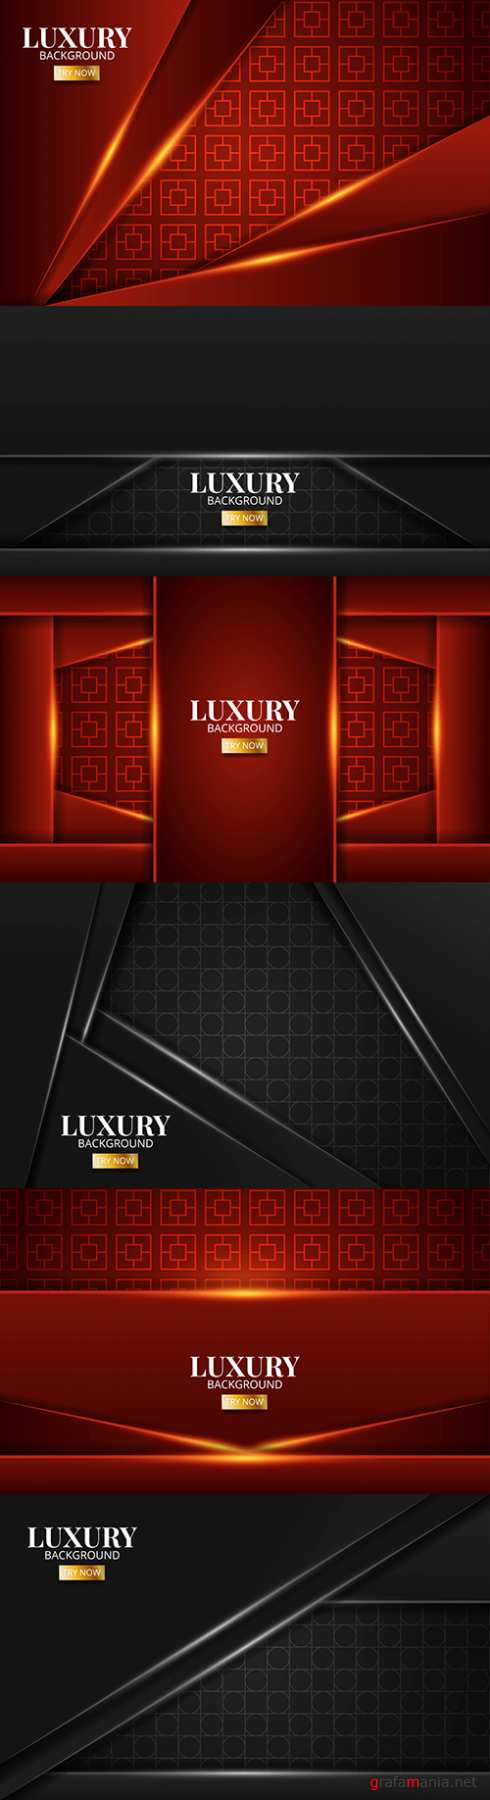 Luxury background and gold design element 18